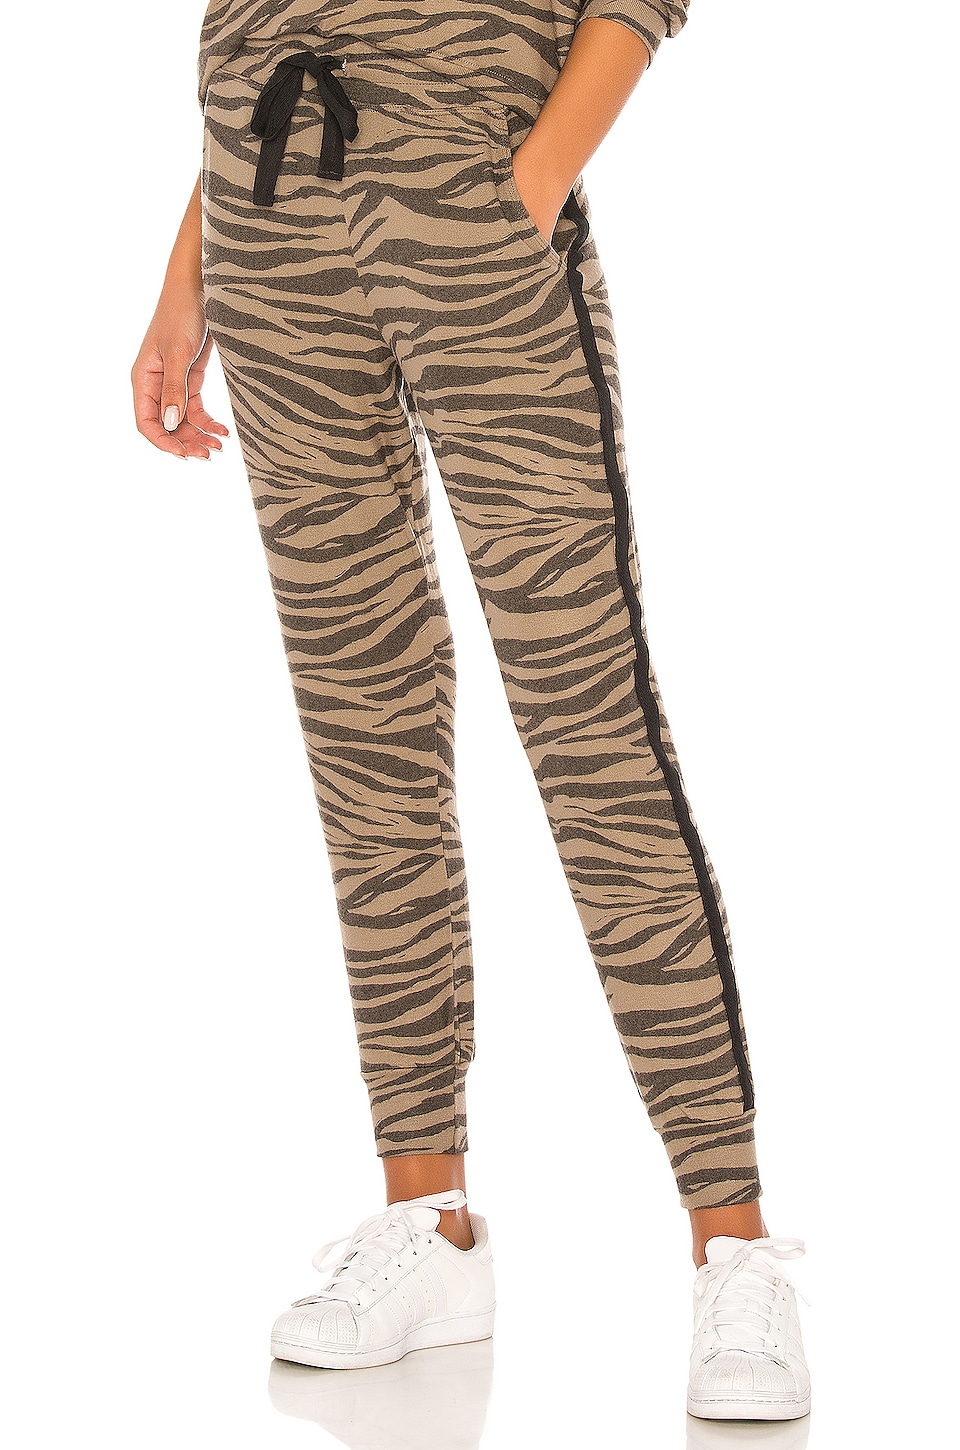 SUNDRY Zebra Print Pocket Jogger Pants in Mink